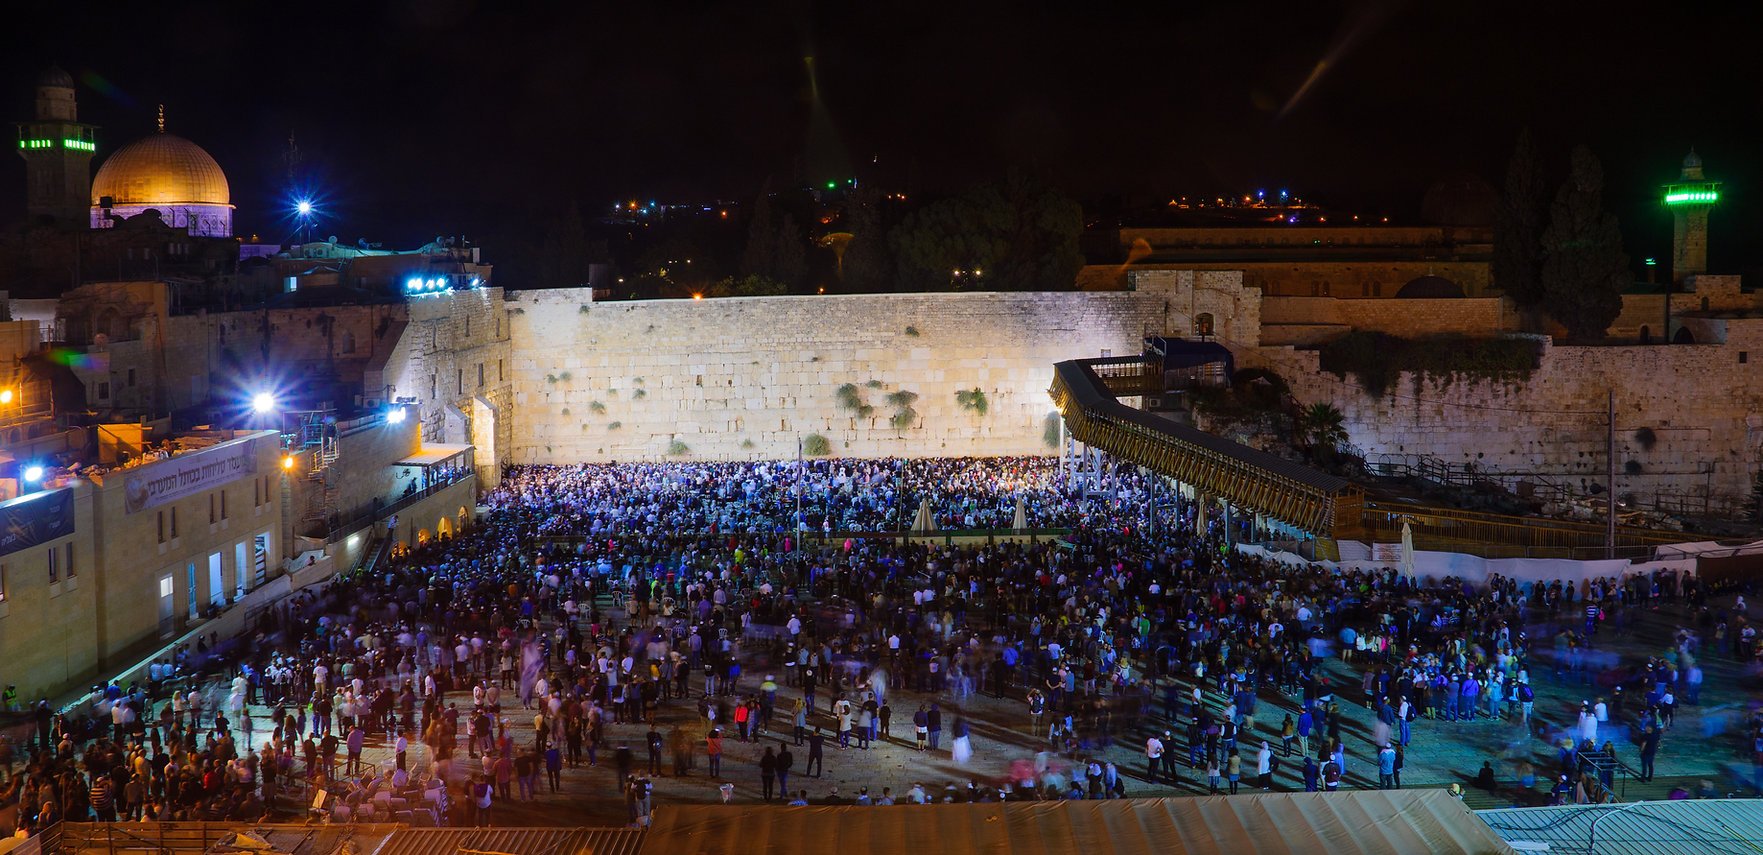 The western wall at night time